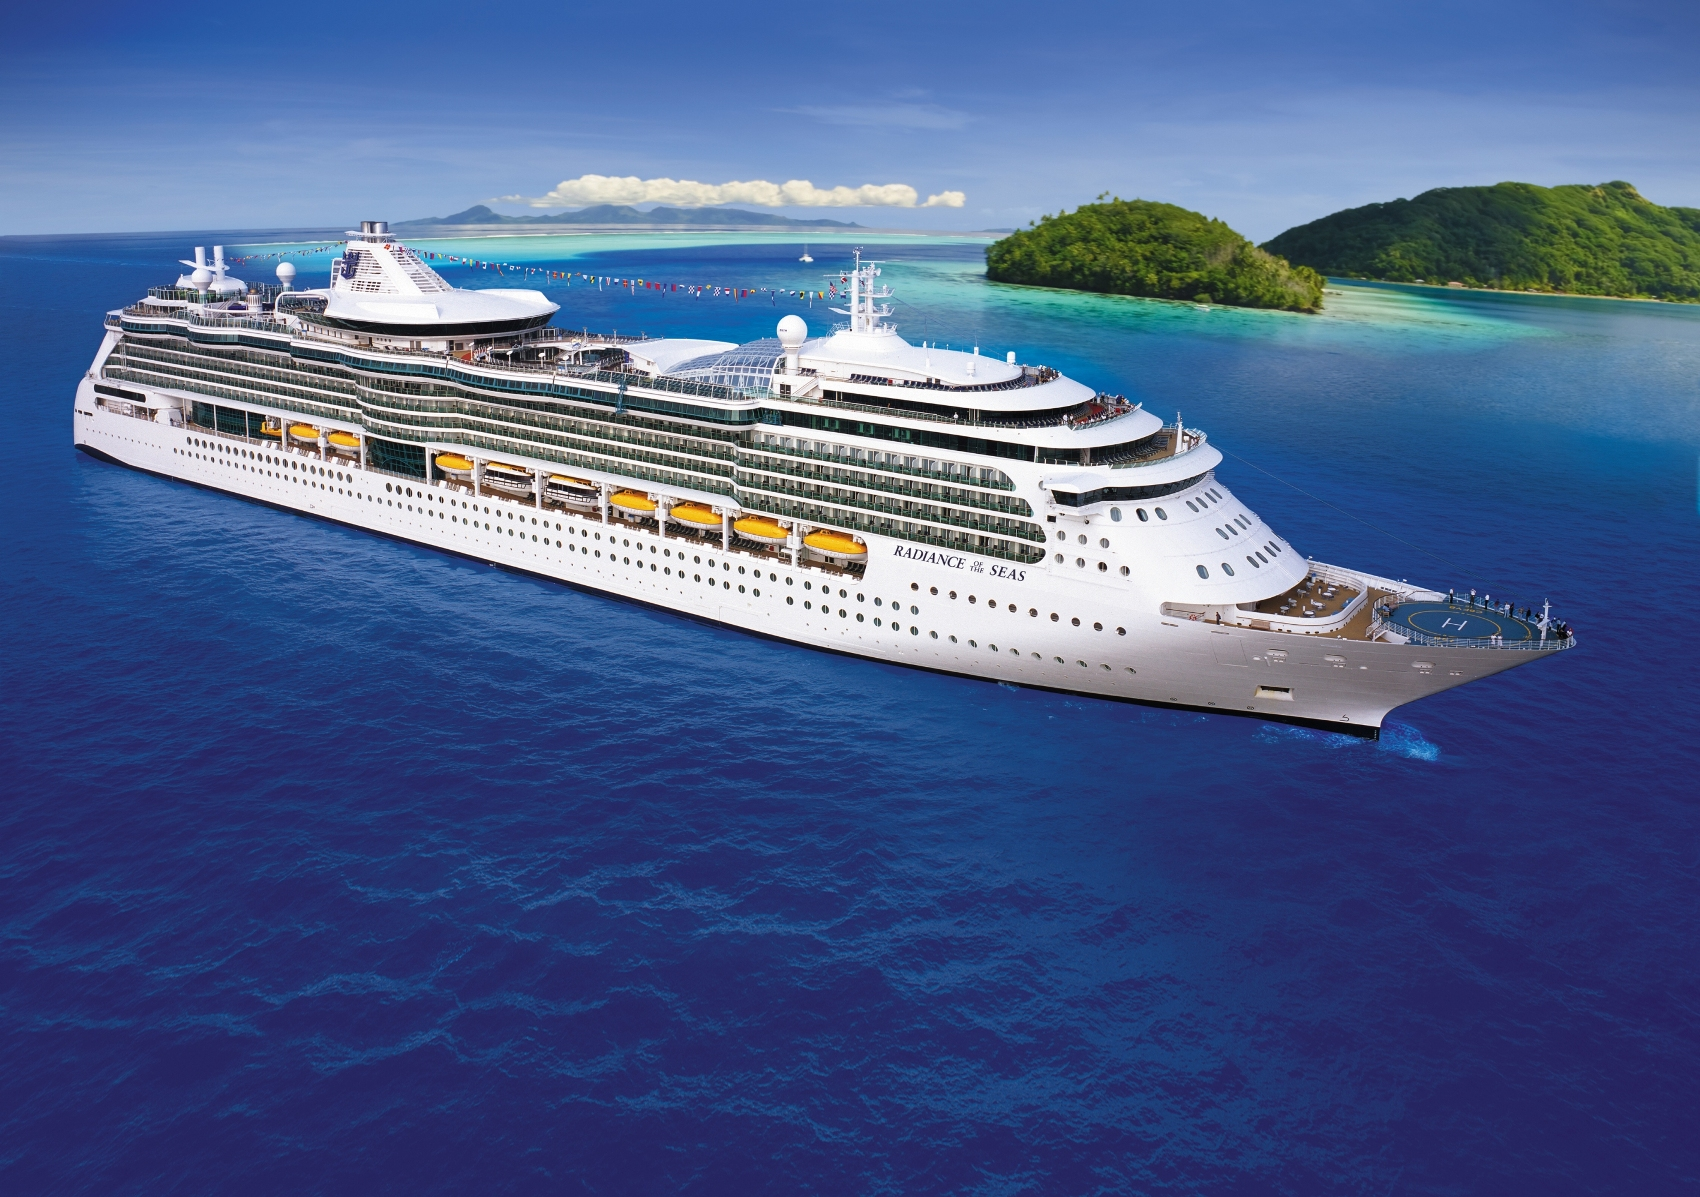 NEW GENERATION OASISCLASS SHIP By John Pond  Cruise And